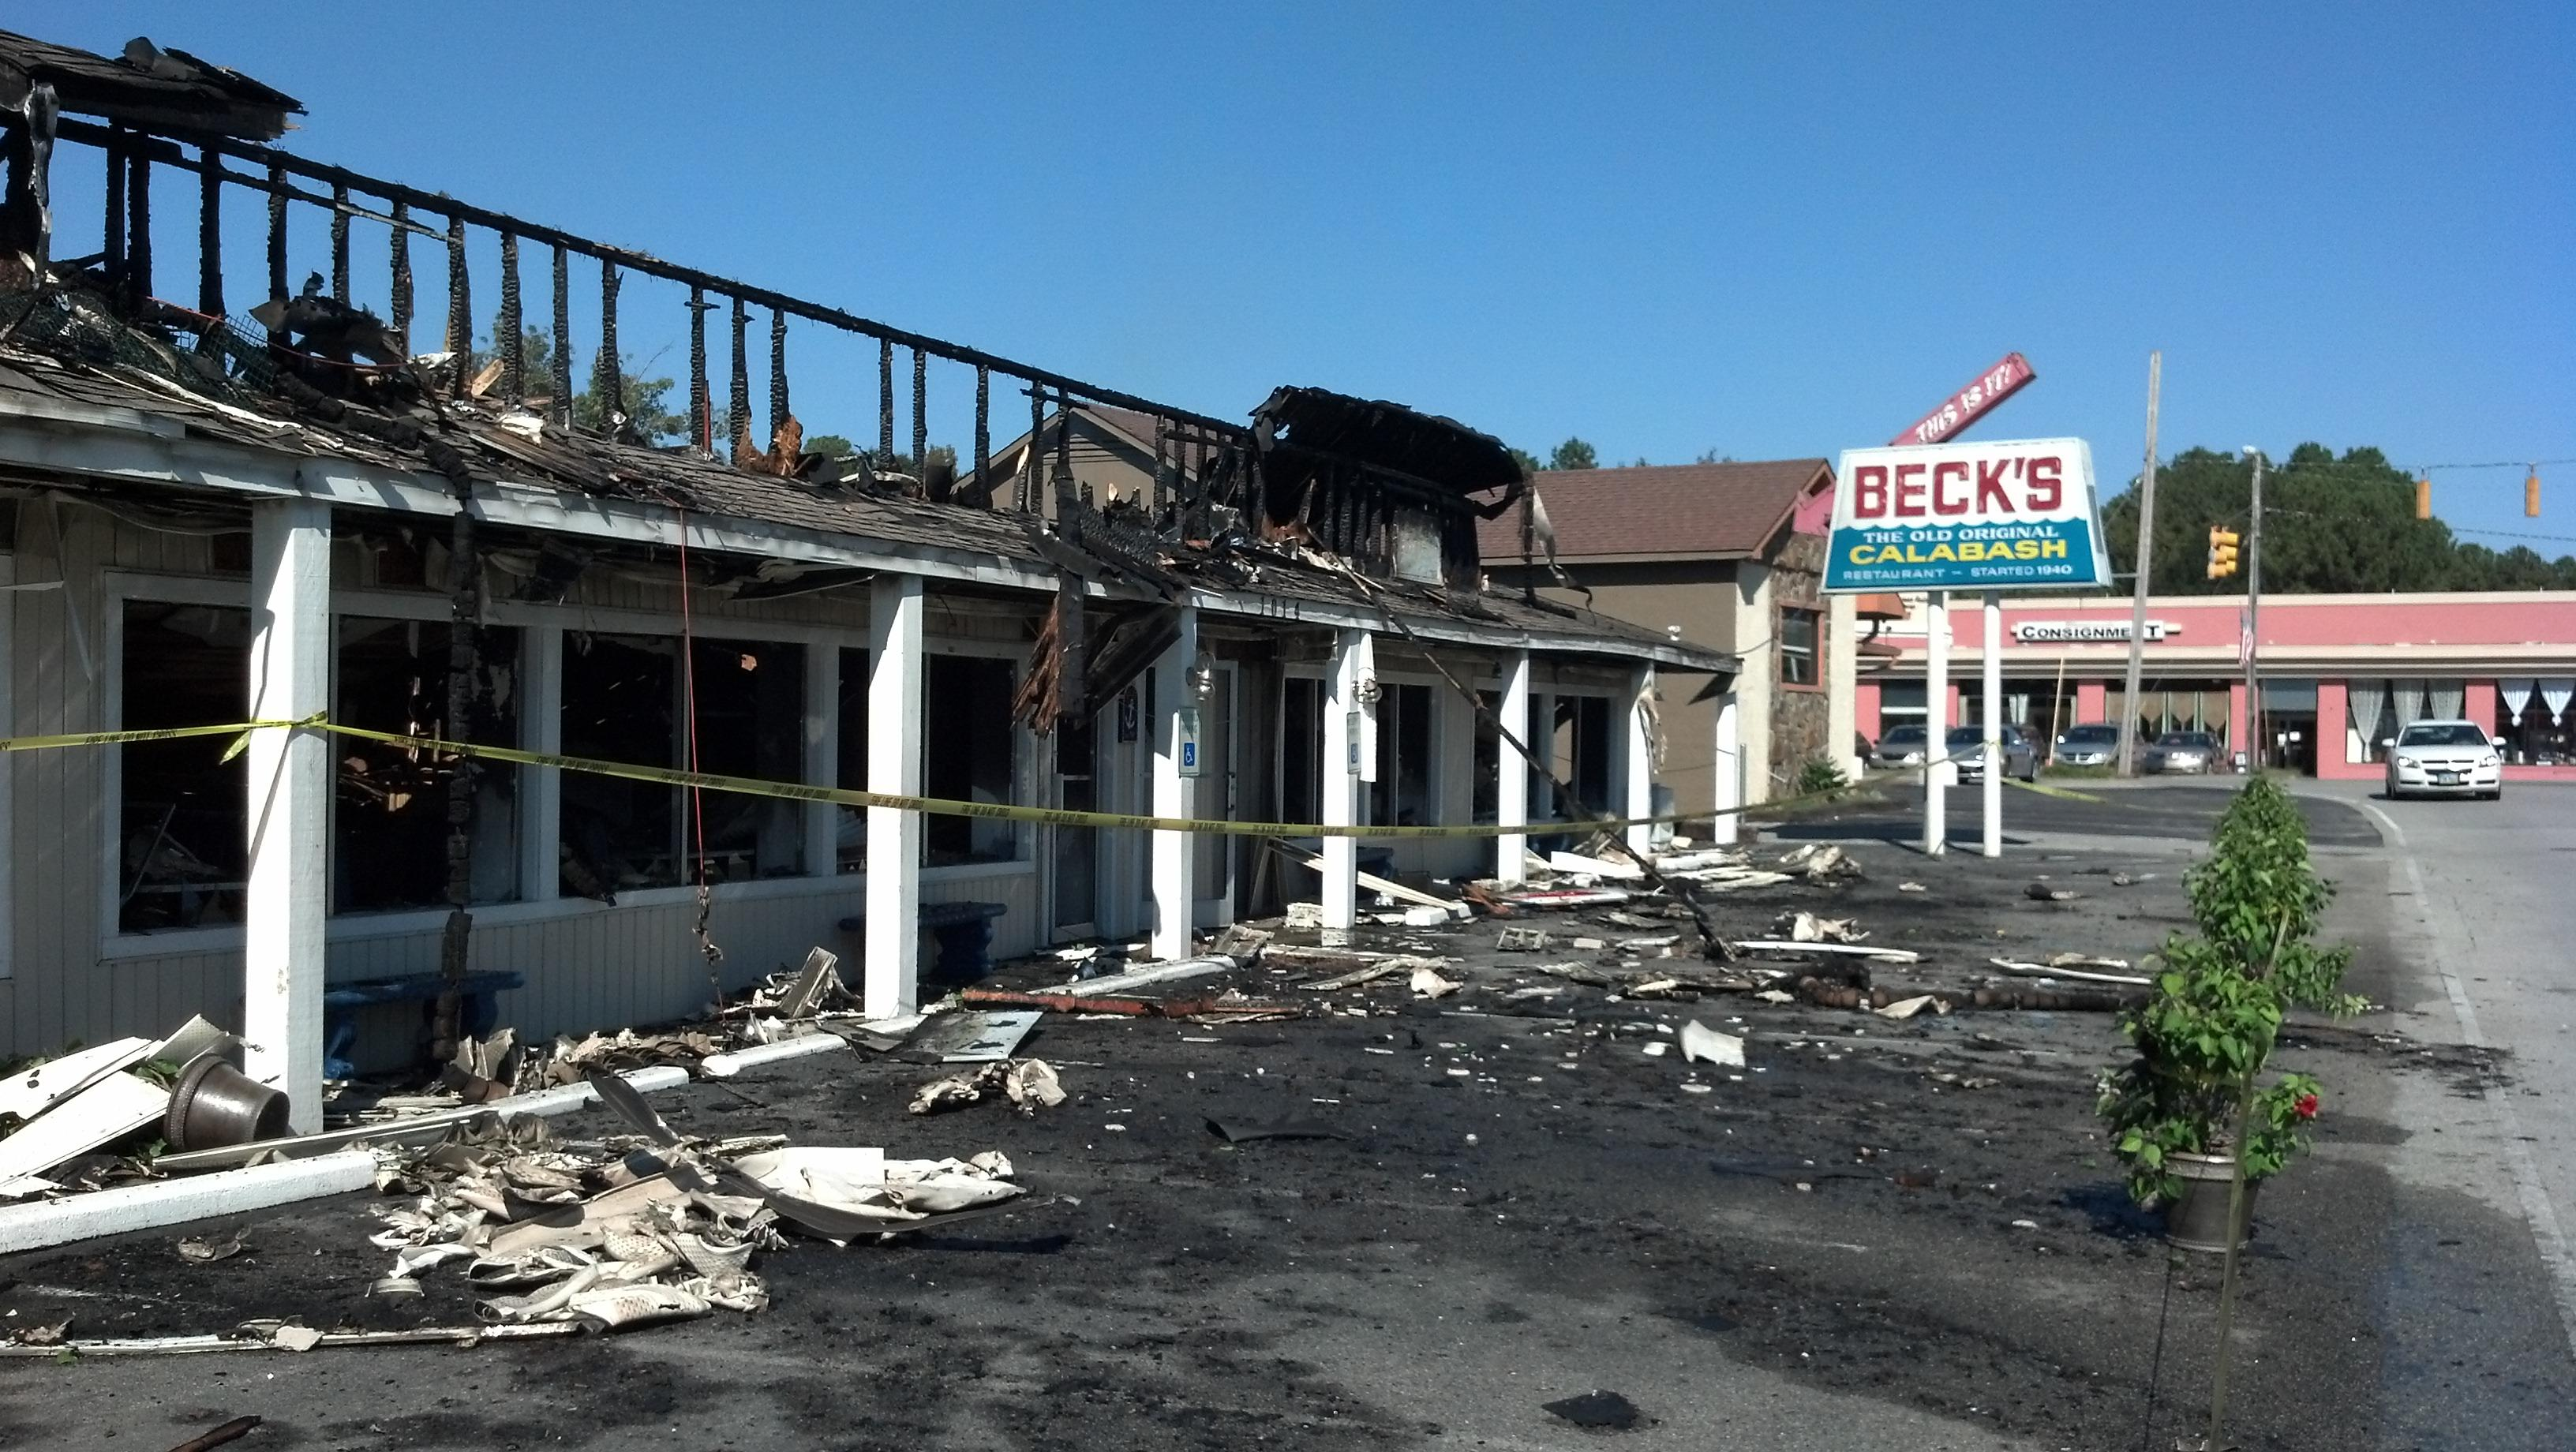 A Blaze Burned Down An Iconic Calabash Restaurant October 22nd Leaving The Structure Ruined And Forcing Eatery To Close Its Doors At Least For